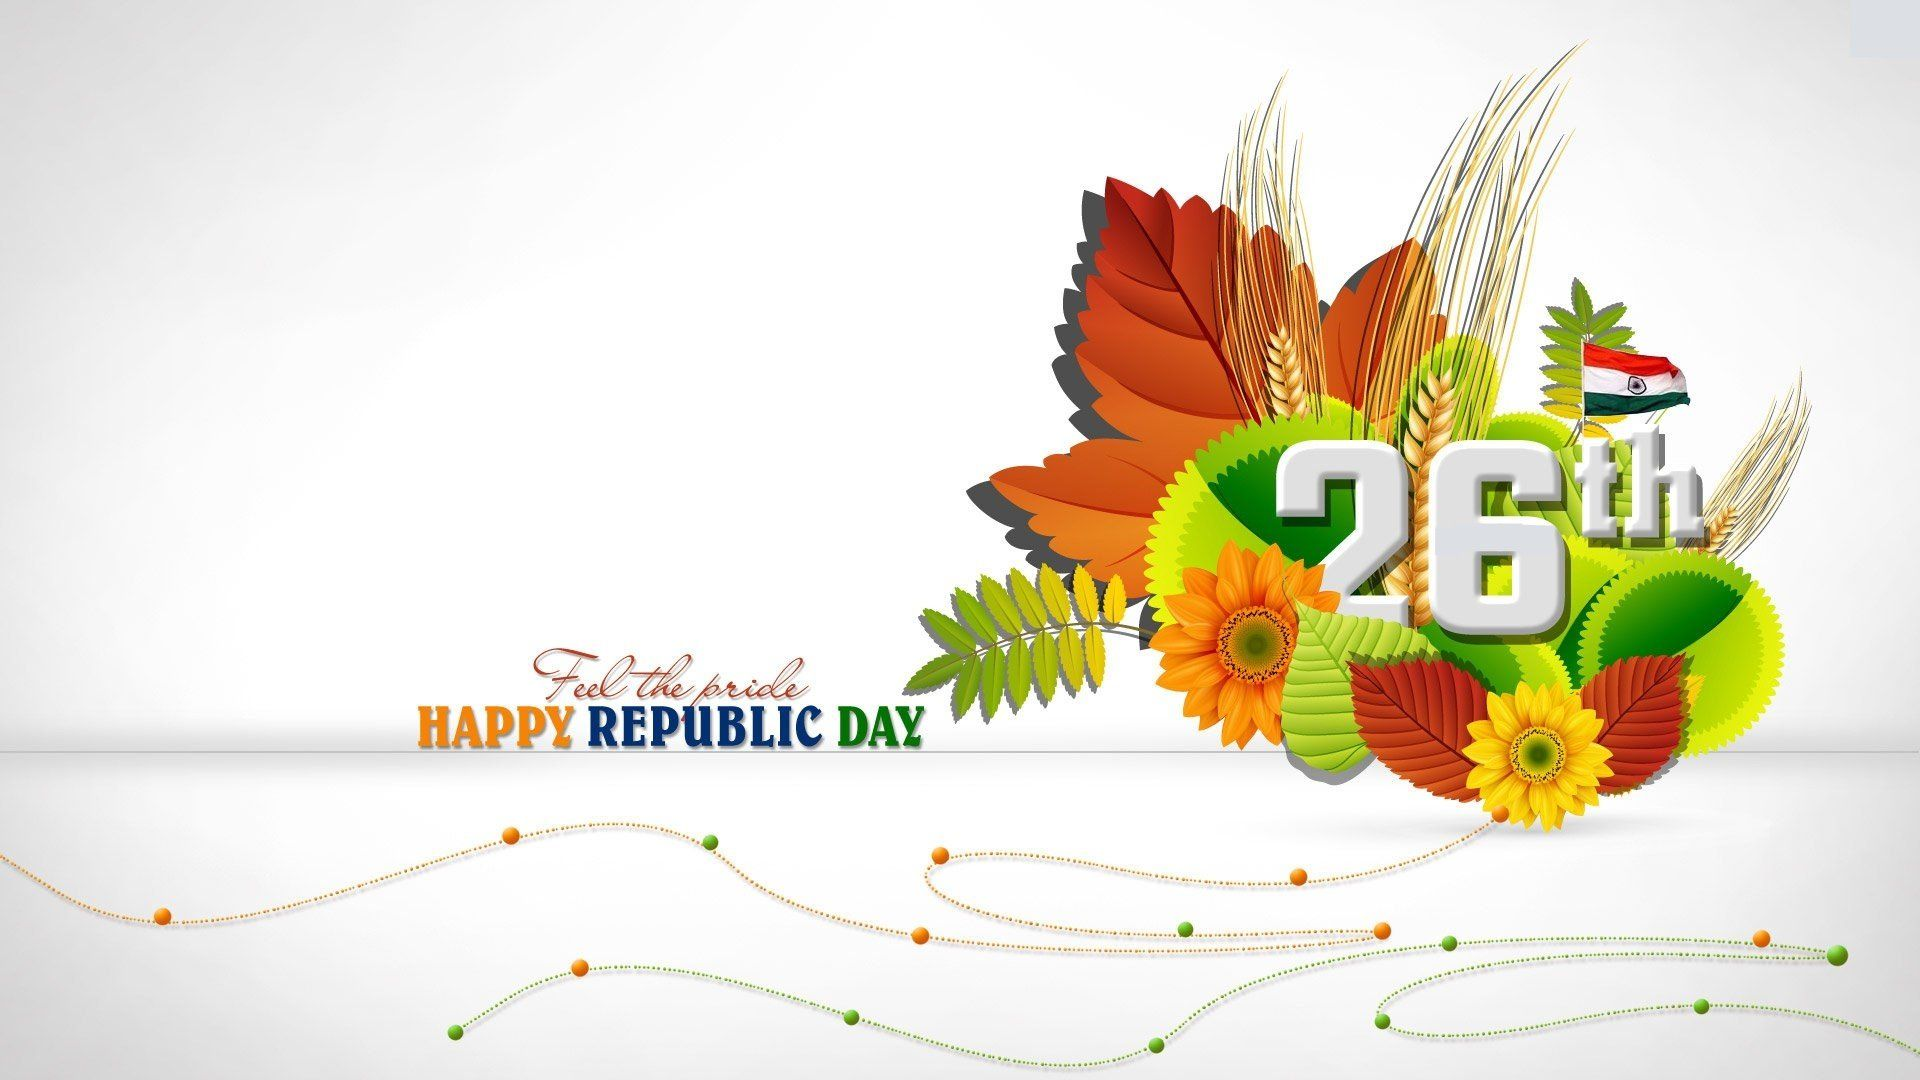 50 Happy Republic Day Images And Photo Collection 2021 List Bark In 2021 Republic Day Happy Republic Day Wallpaper India Republic Day Images